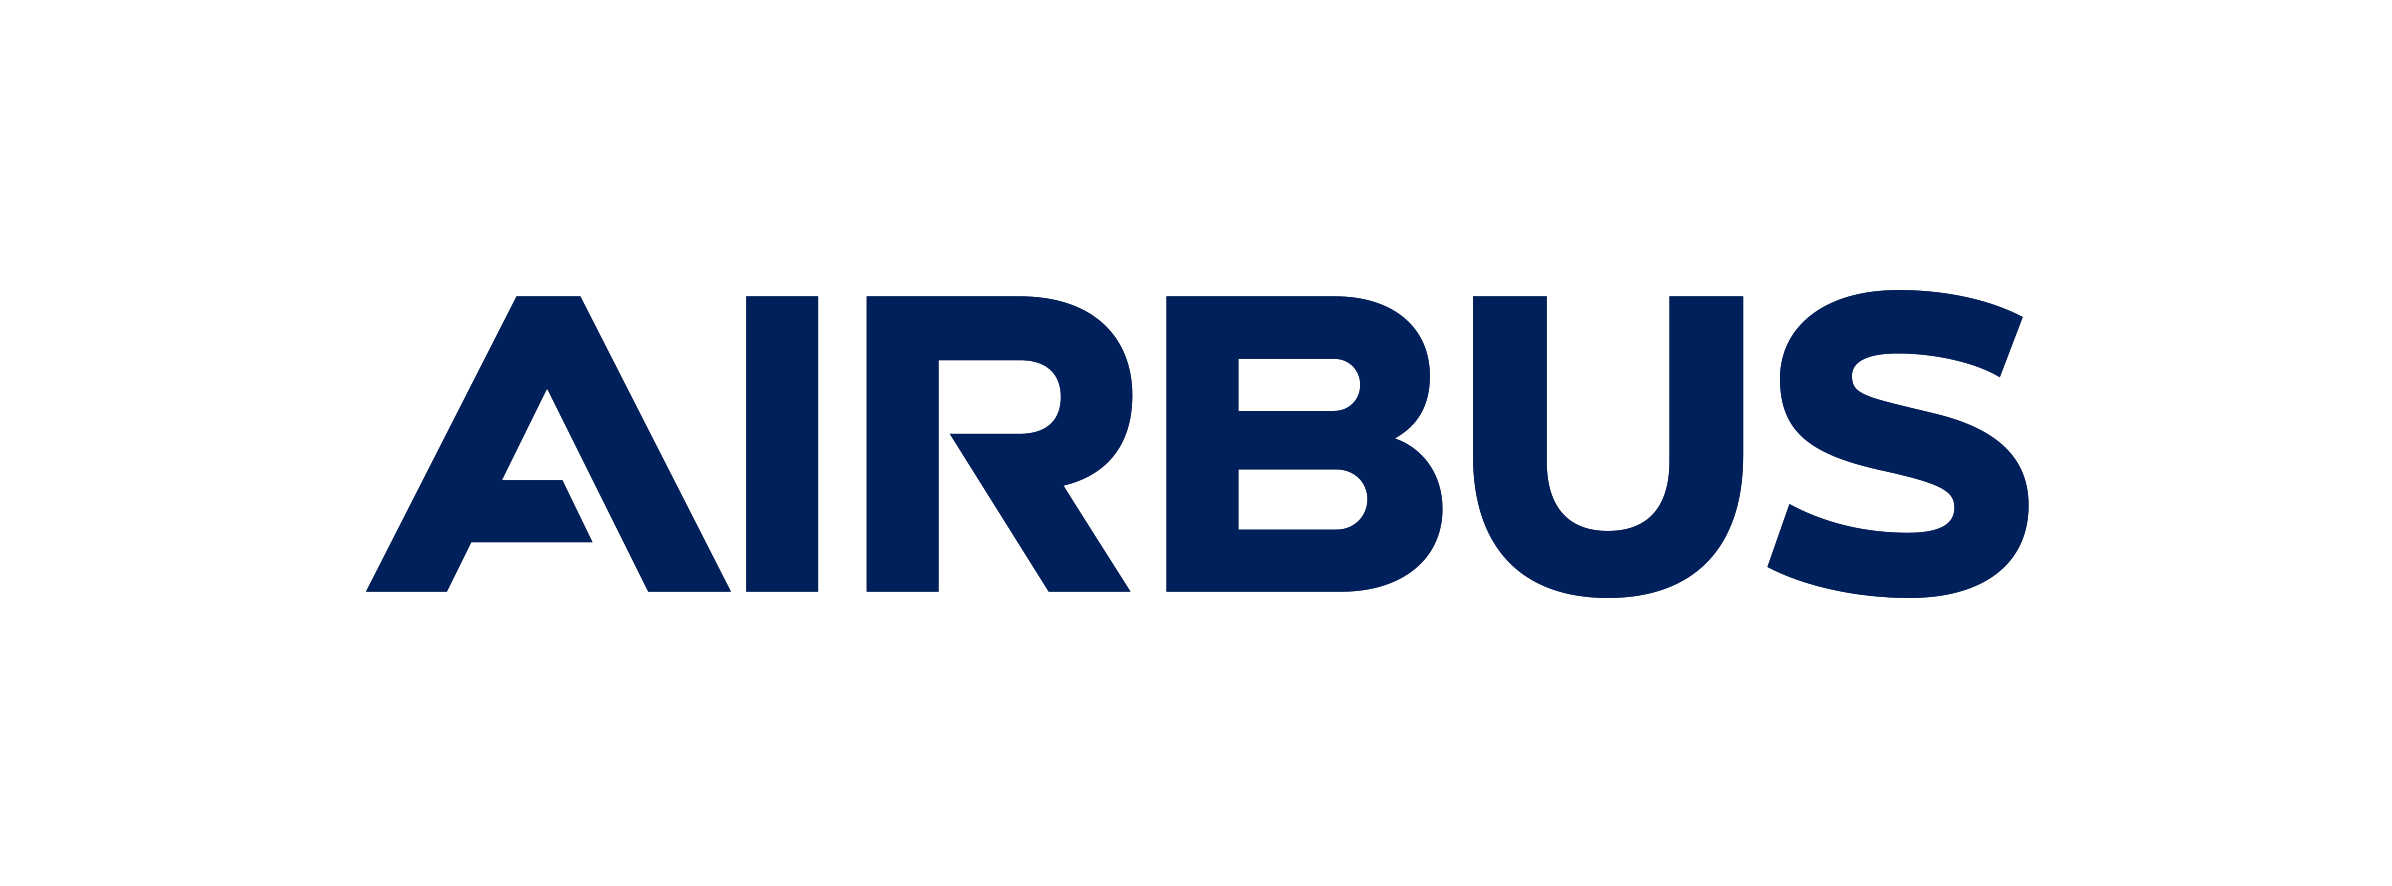 Airbus CyberSecurity - An Interview with Mr Ian Goslin, Managing Director Airbus CyberSecurity, UK